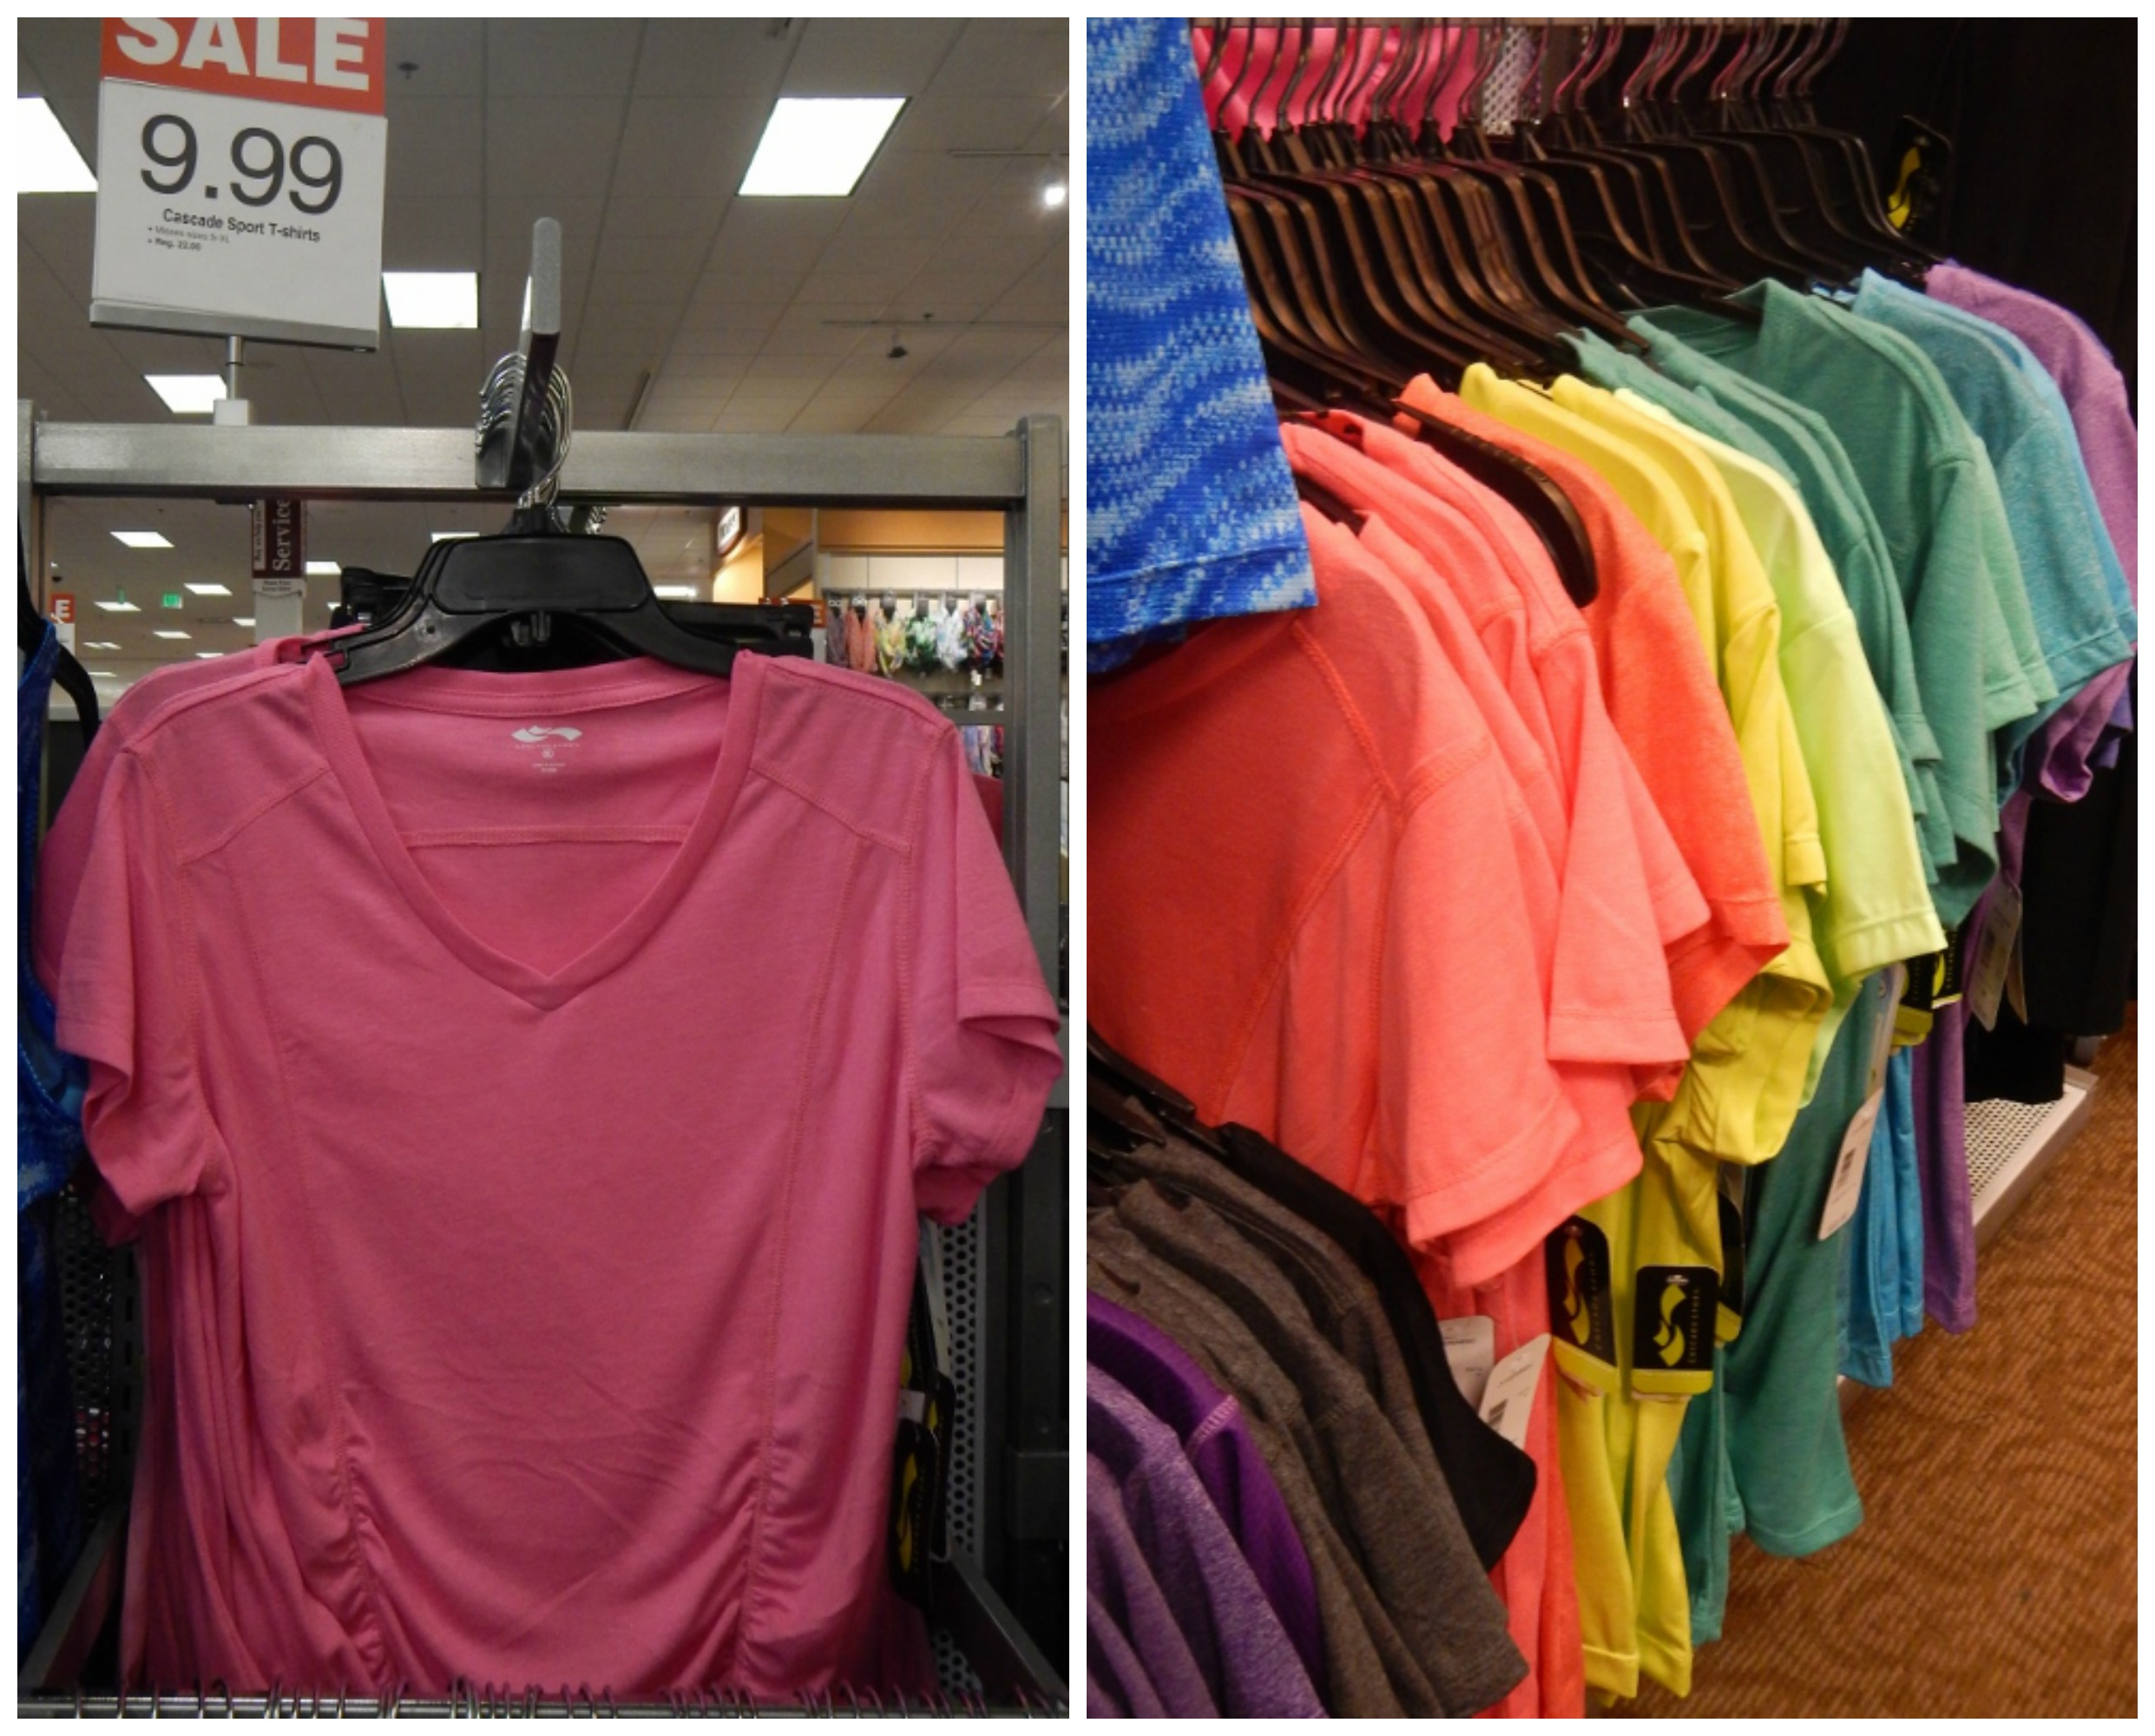 Fred Meyer Your Source For Budget Friendly Athletic Apparel